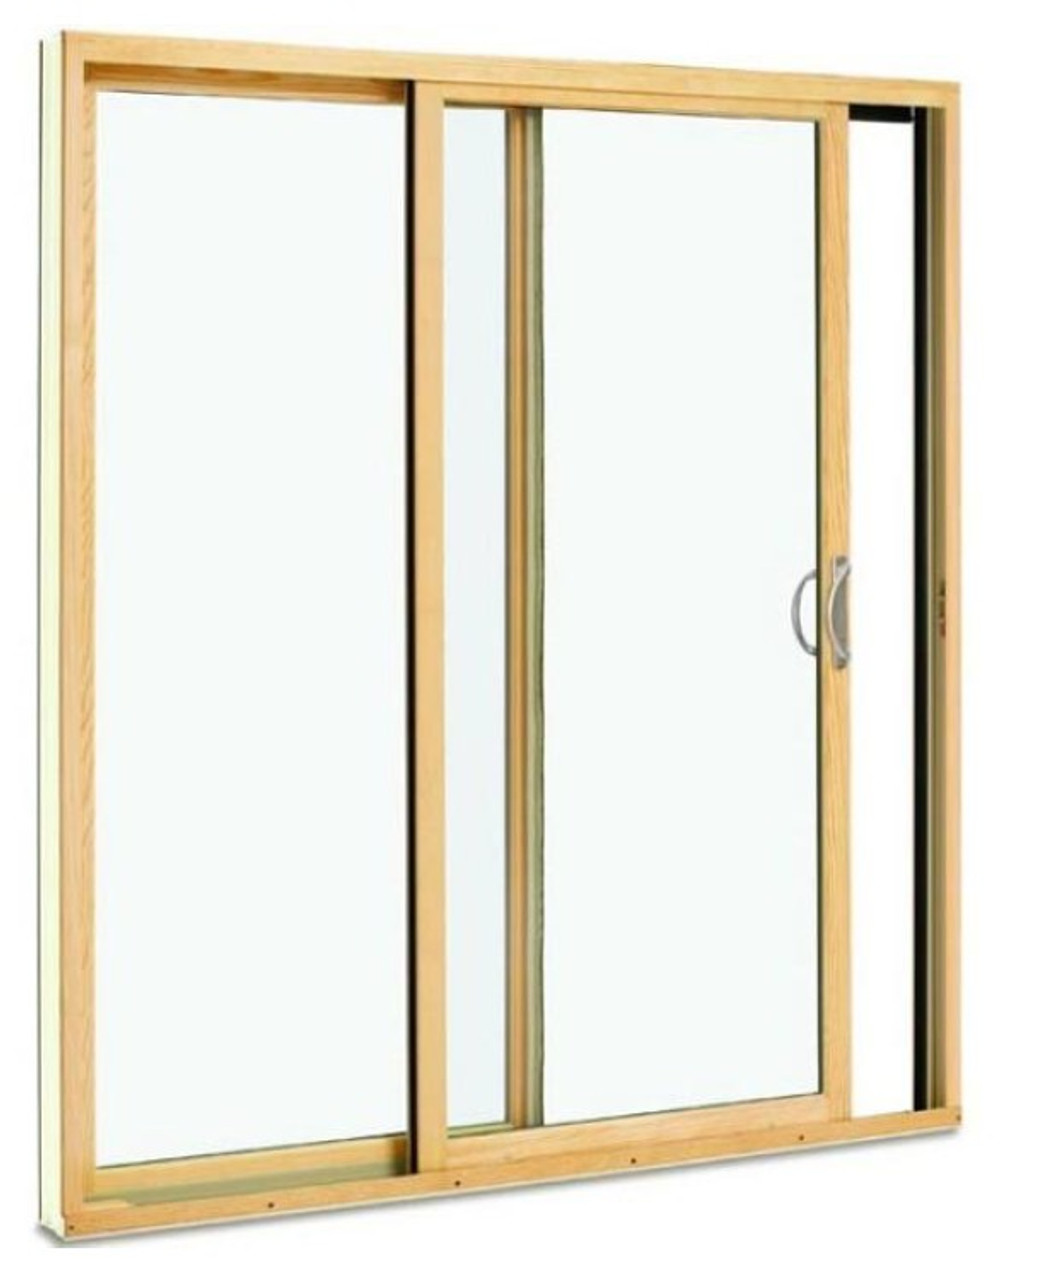 2-PANEL 8'0'' ROUGH OPENING HEIGHT (STANDARD STYLE) SLIDING DOOR / LOW-E 270 GLASS